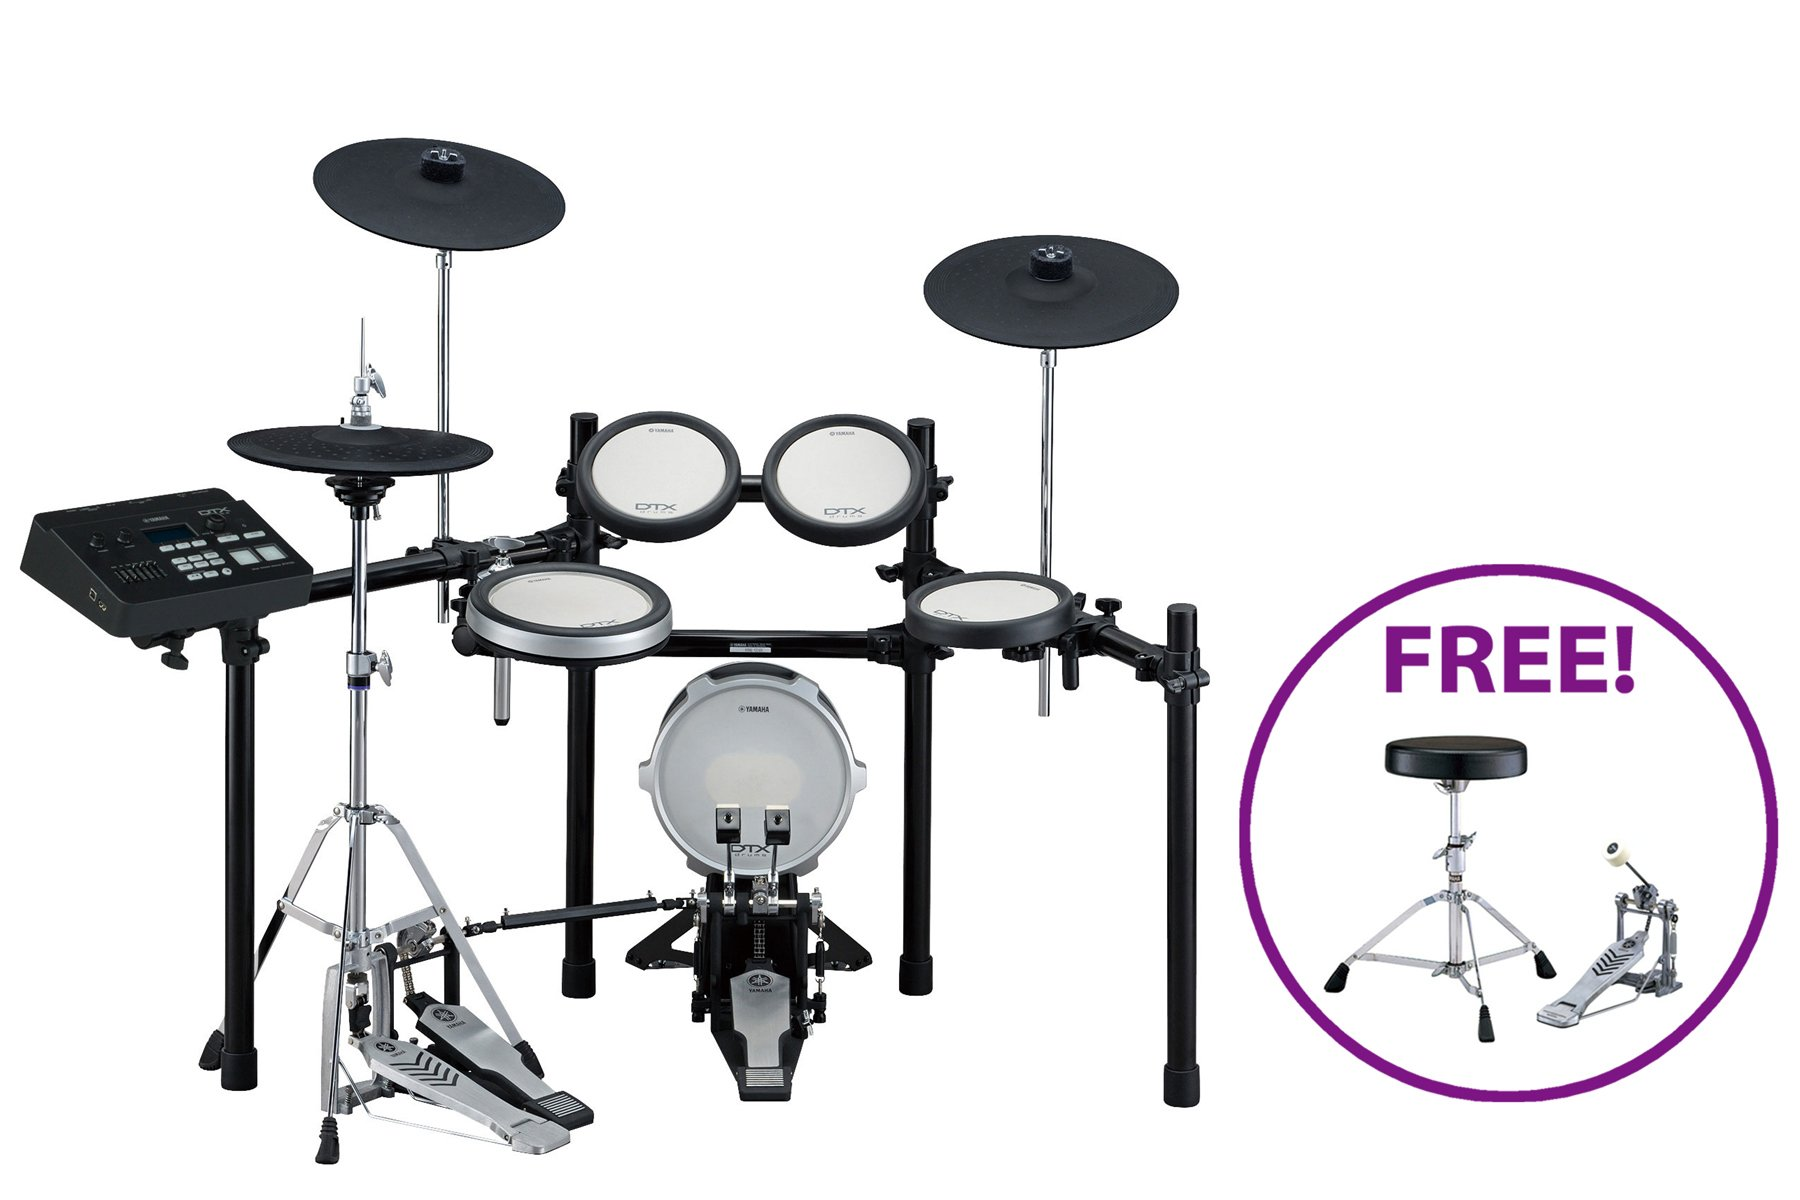 DTX720K Electronic Drum Kit with FREE Bass Drum Pedal & Throne